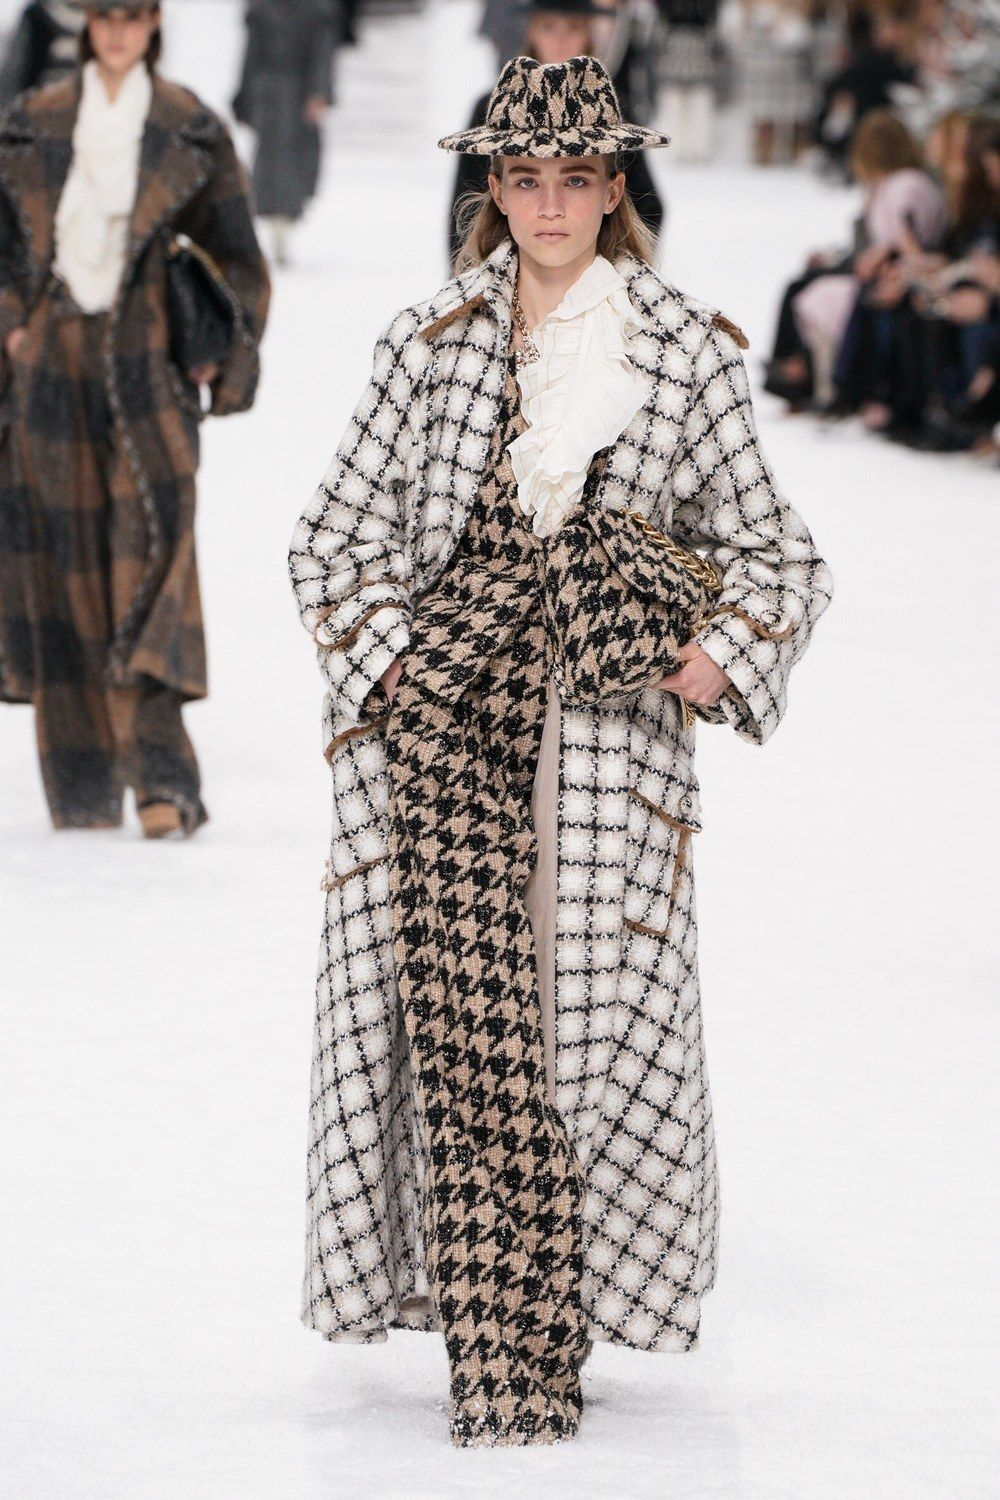 Prêt-à-porter Chanel Herbst / Inverno 2019-2020 – Collezione | Vogue Germania